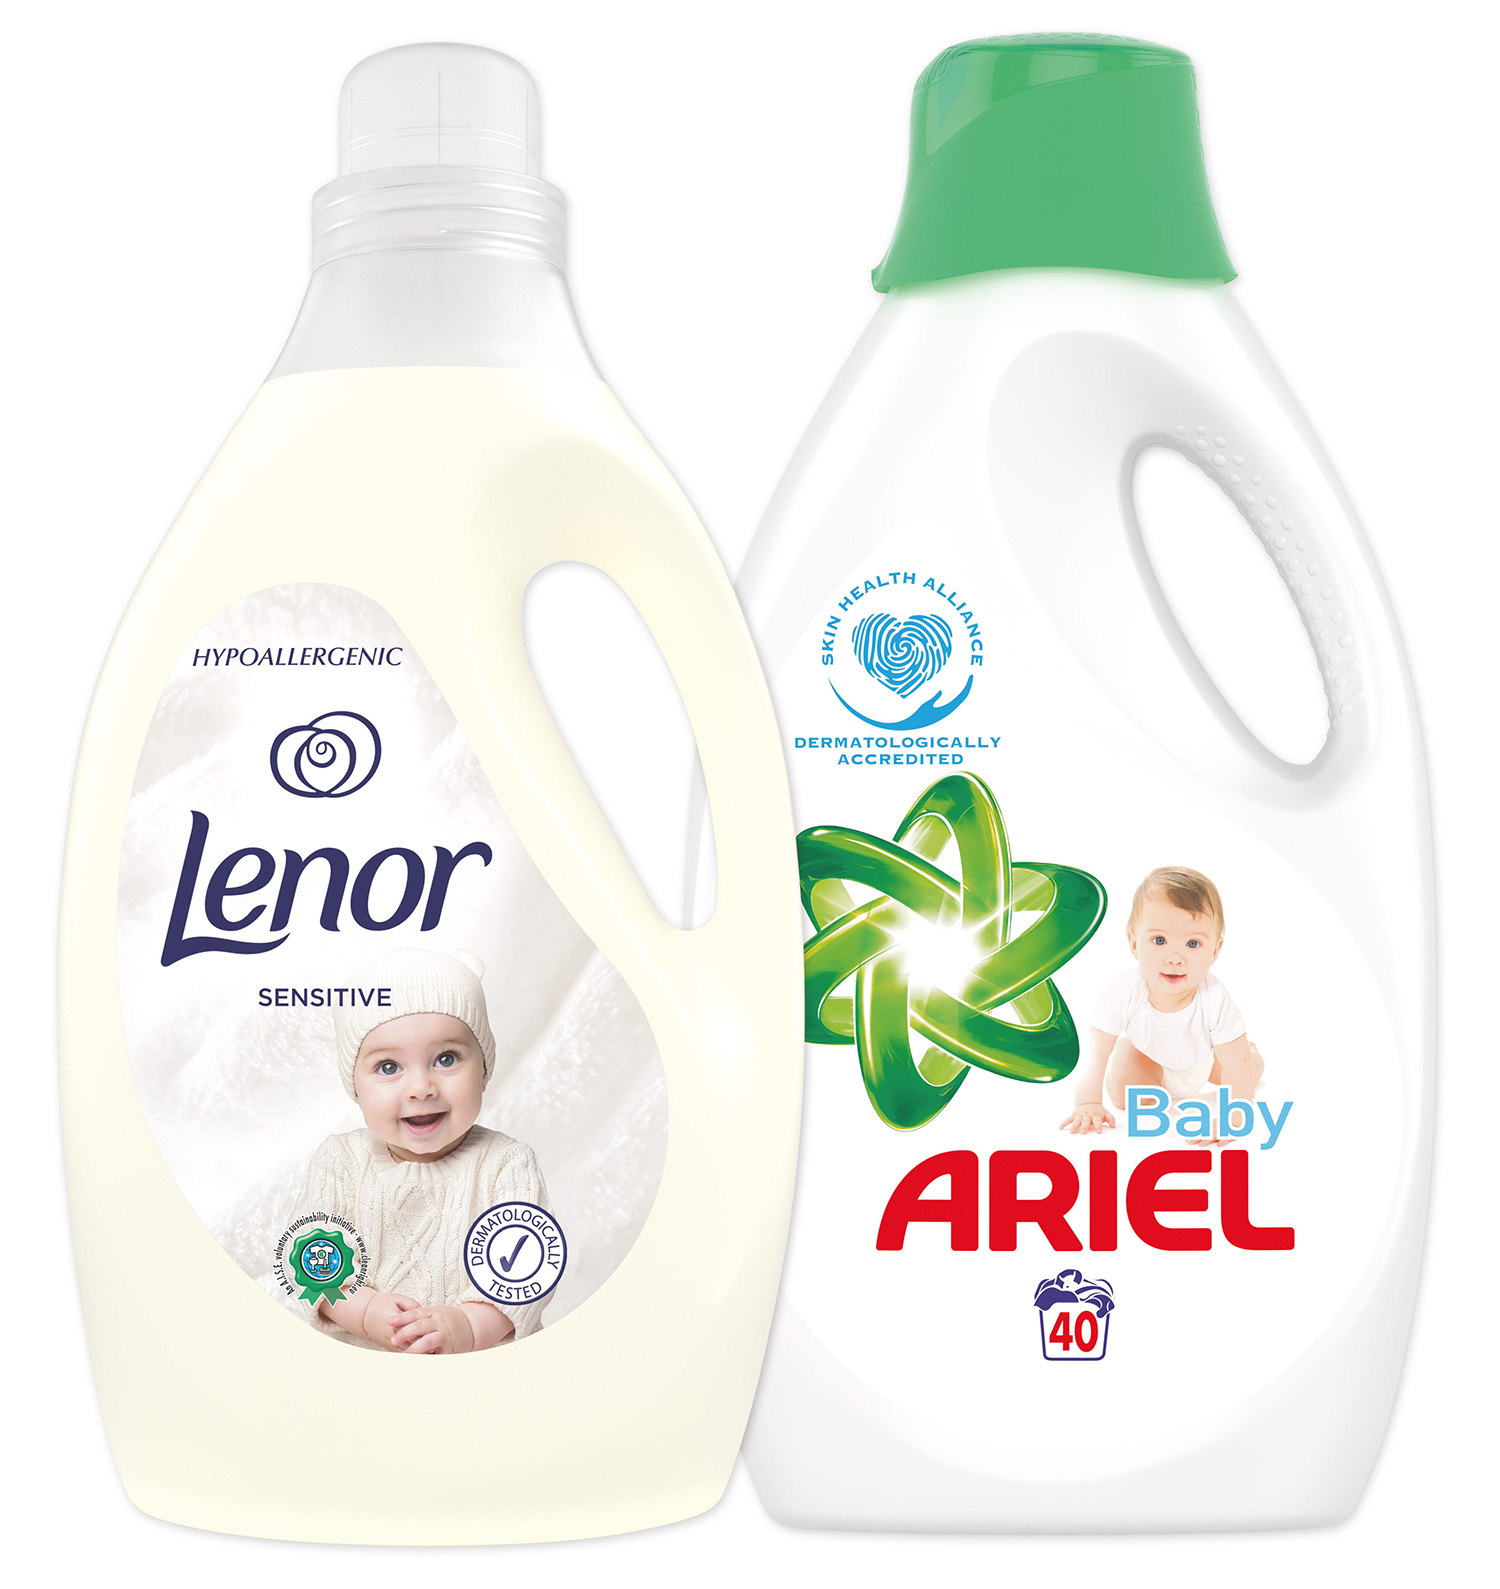 LENOR Starter pack Ariel gel 40 dávek  Lenor aviváž Sensitive 2.9l